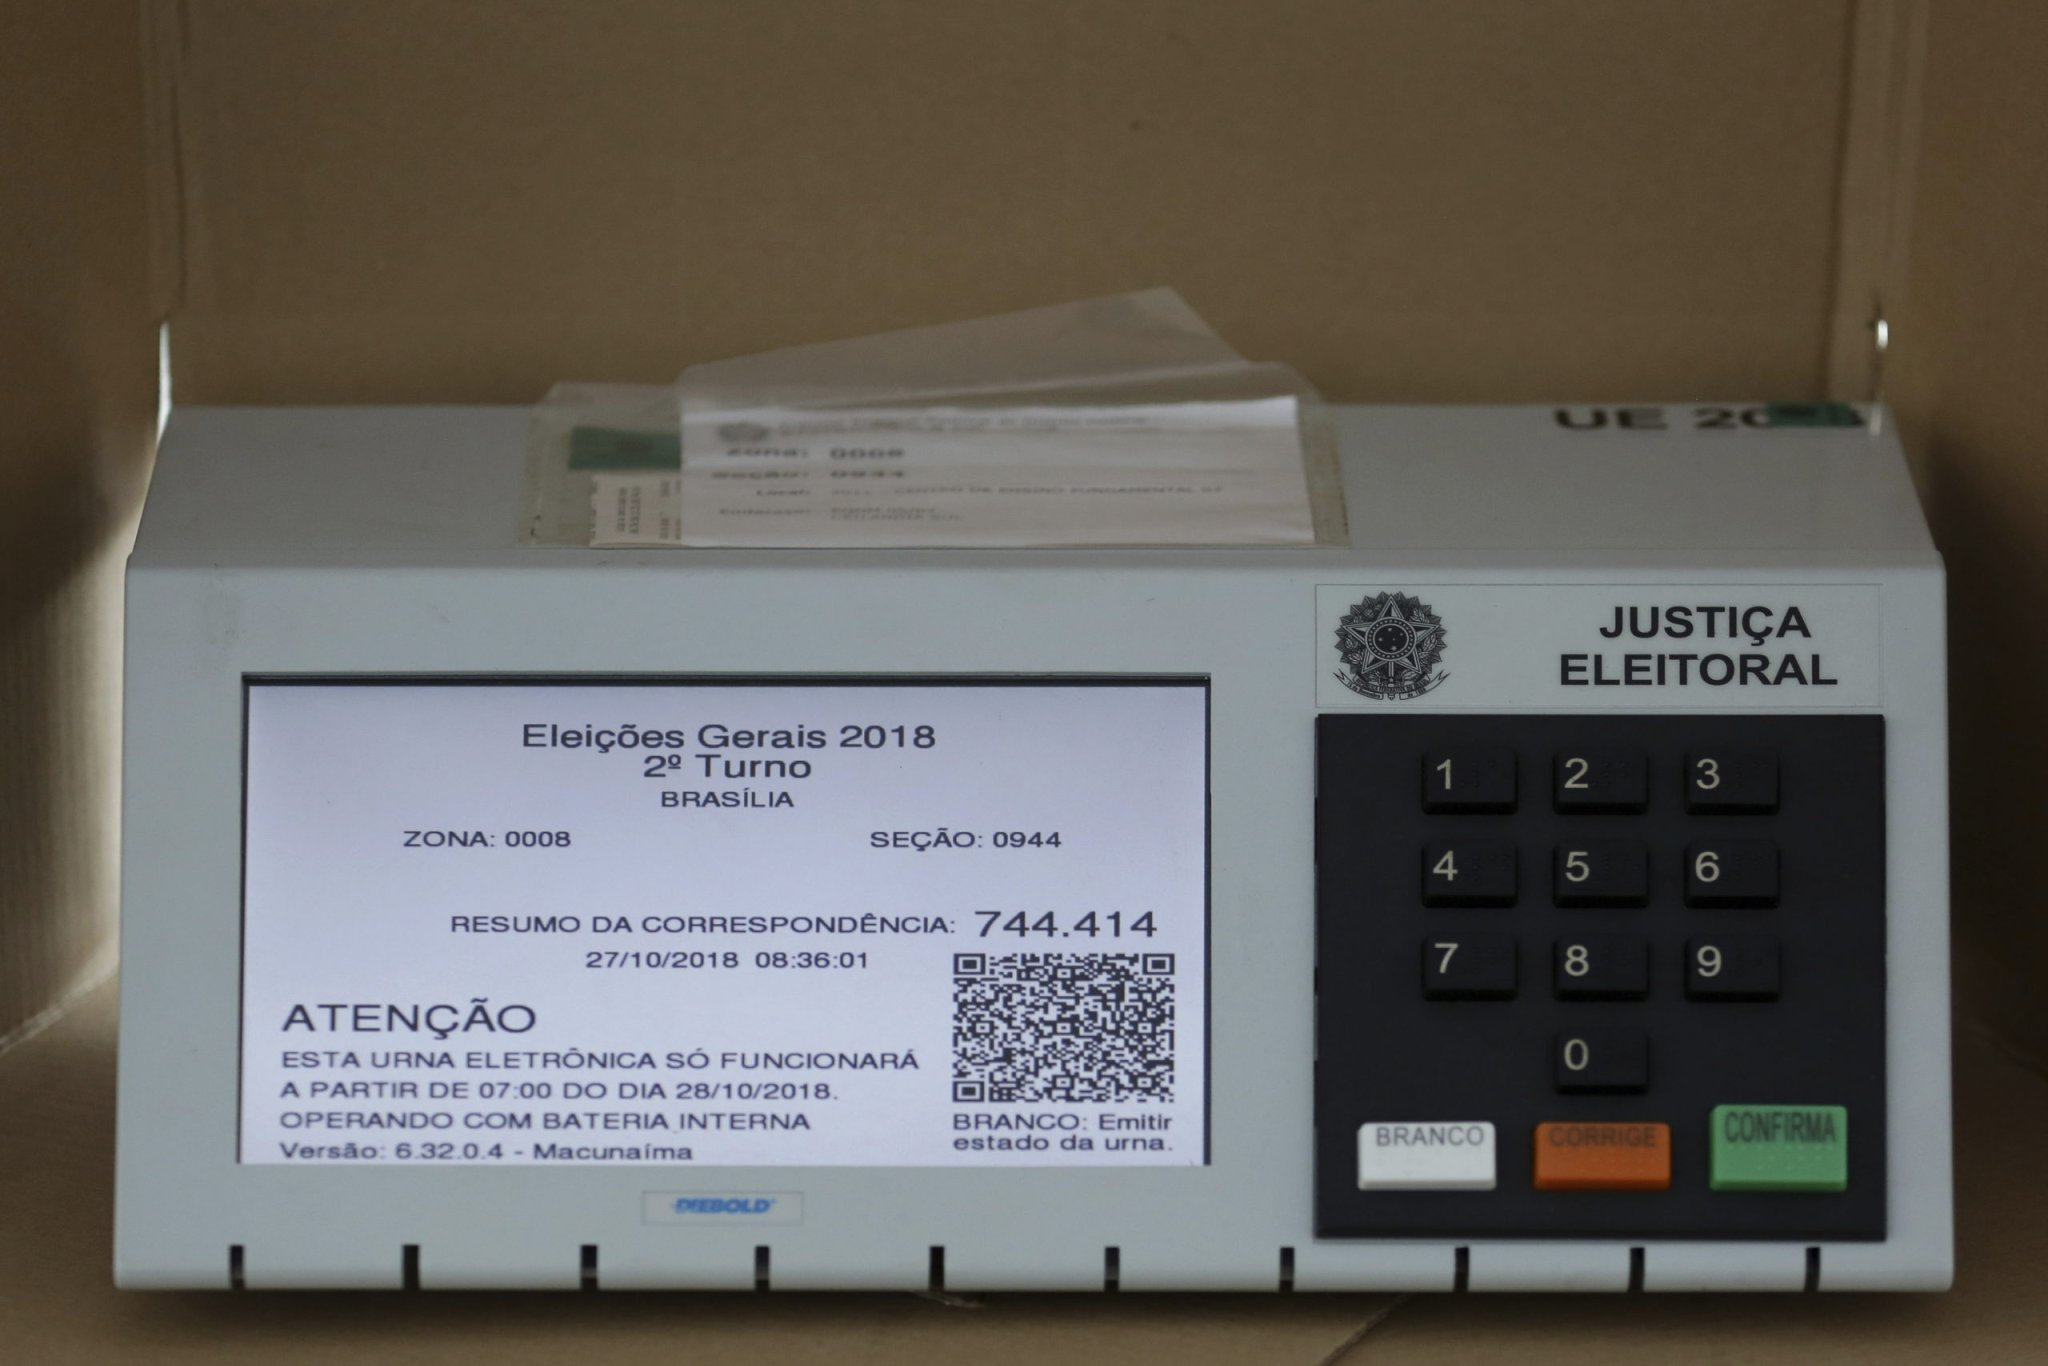 Electronic ballots are effective, fast and used all over the world — so why aren't used in the U.S.?